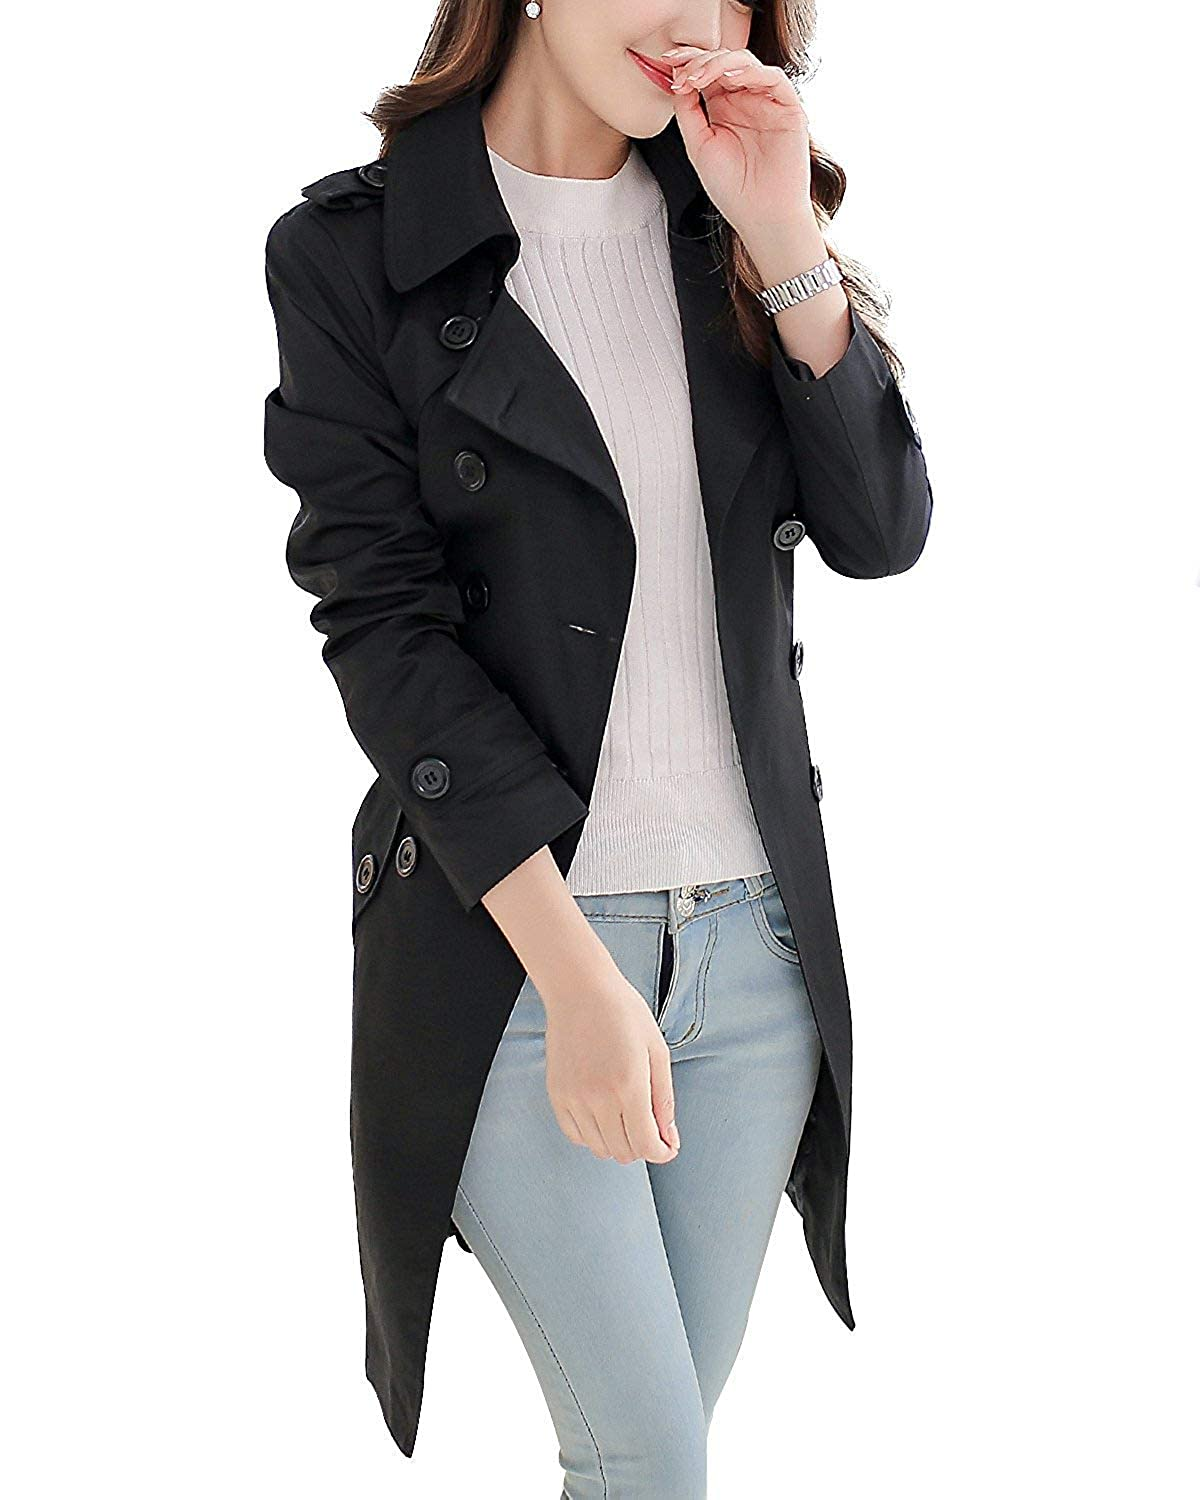 Black Cloudless Women's Double Breasted Trench Coat Chelsea Tailoring Overcoat